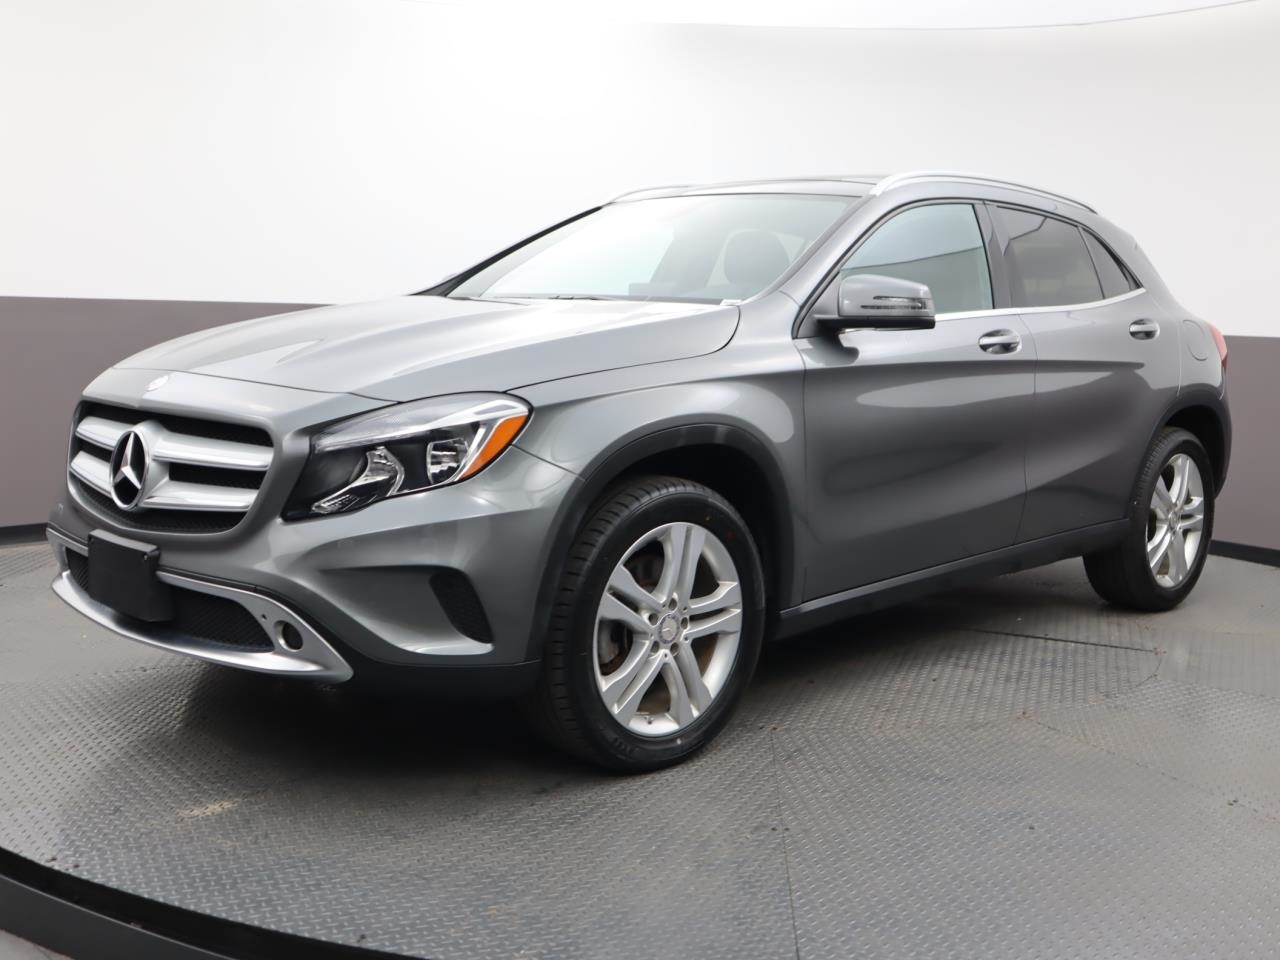 Used MERCEDES-BENZ GLA 2017 MARGATE GLA 250